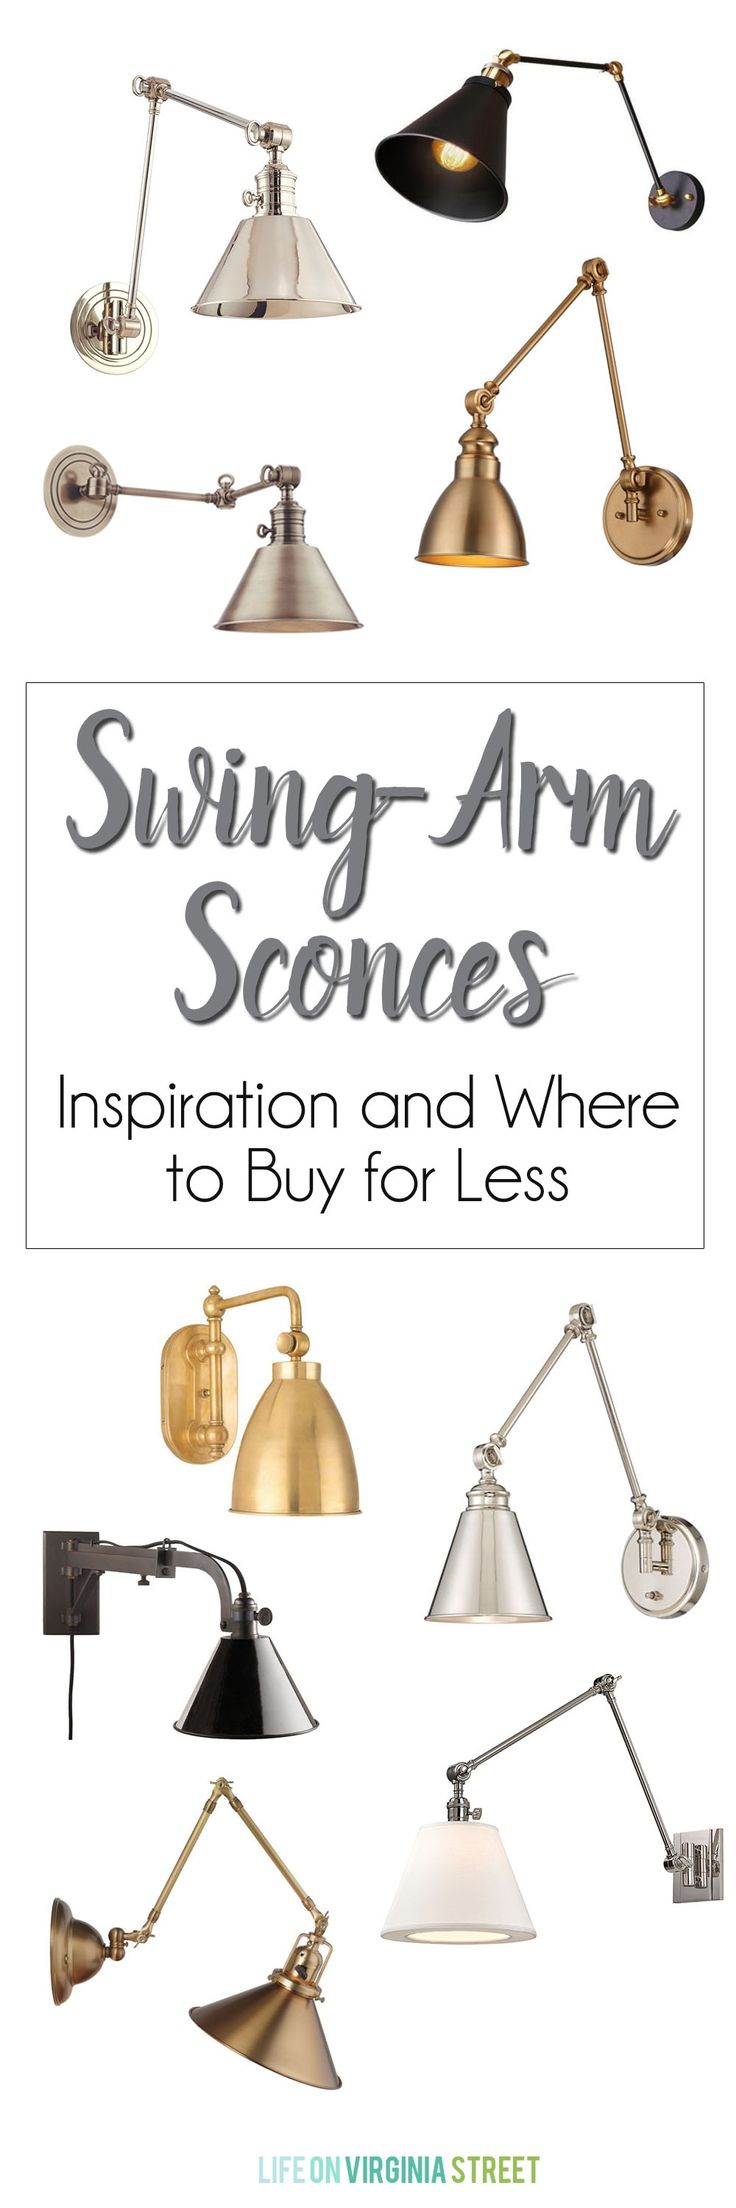 Swing Arm Sconces Sources & Inspiration - Life On Virginia Street